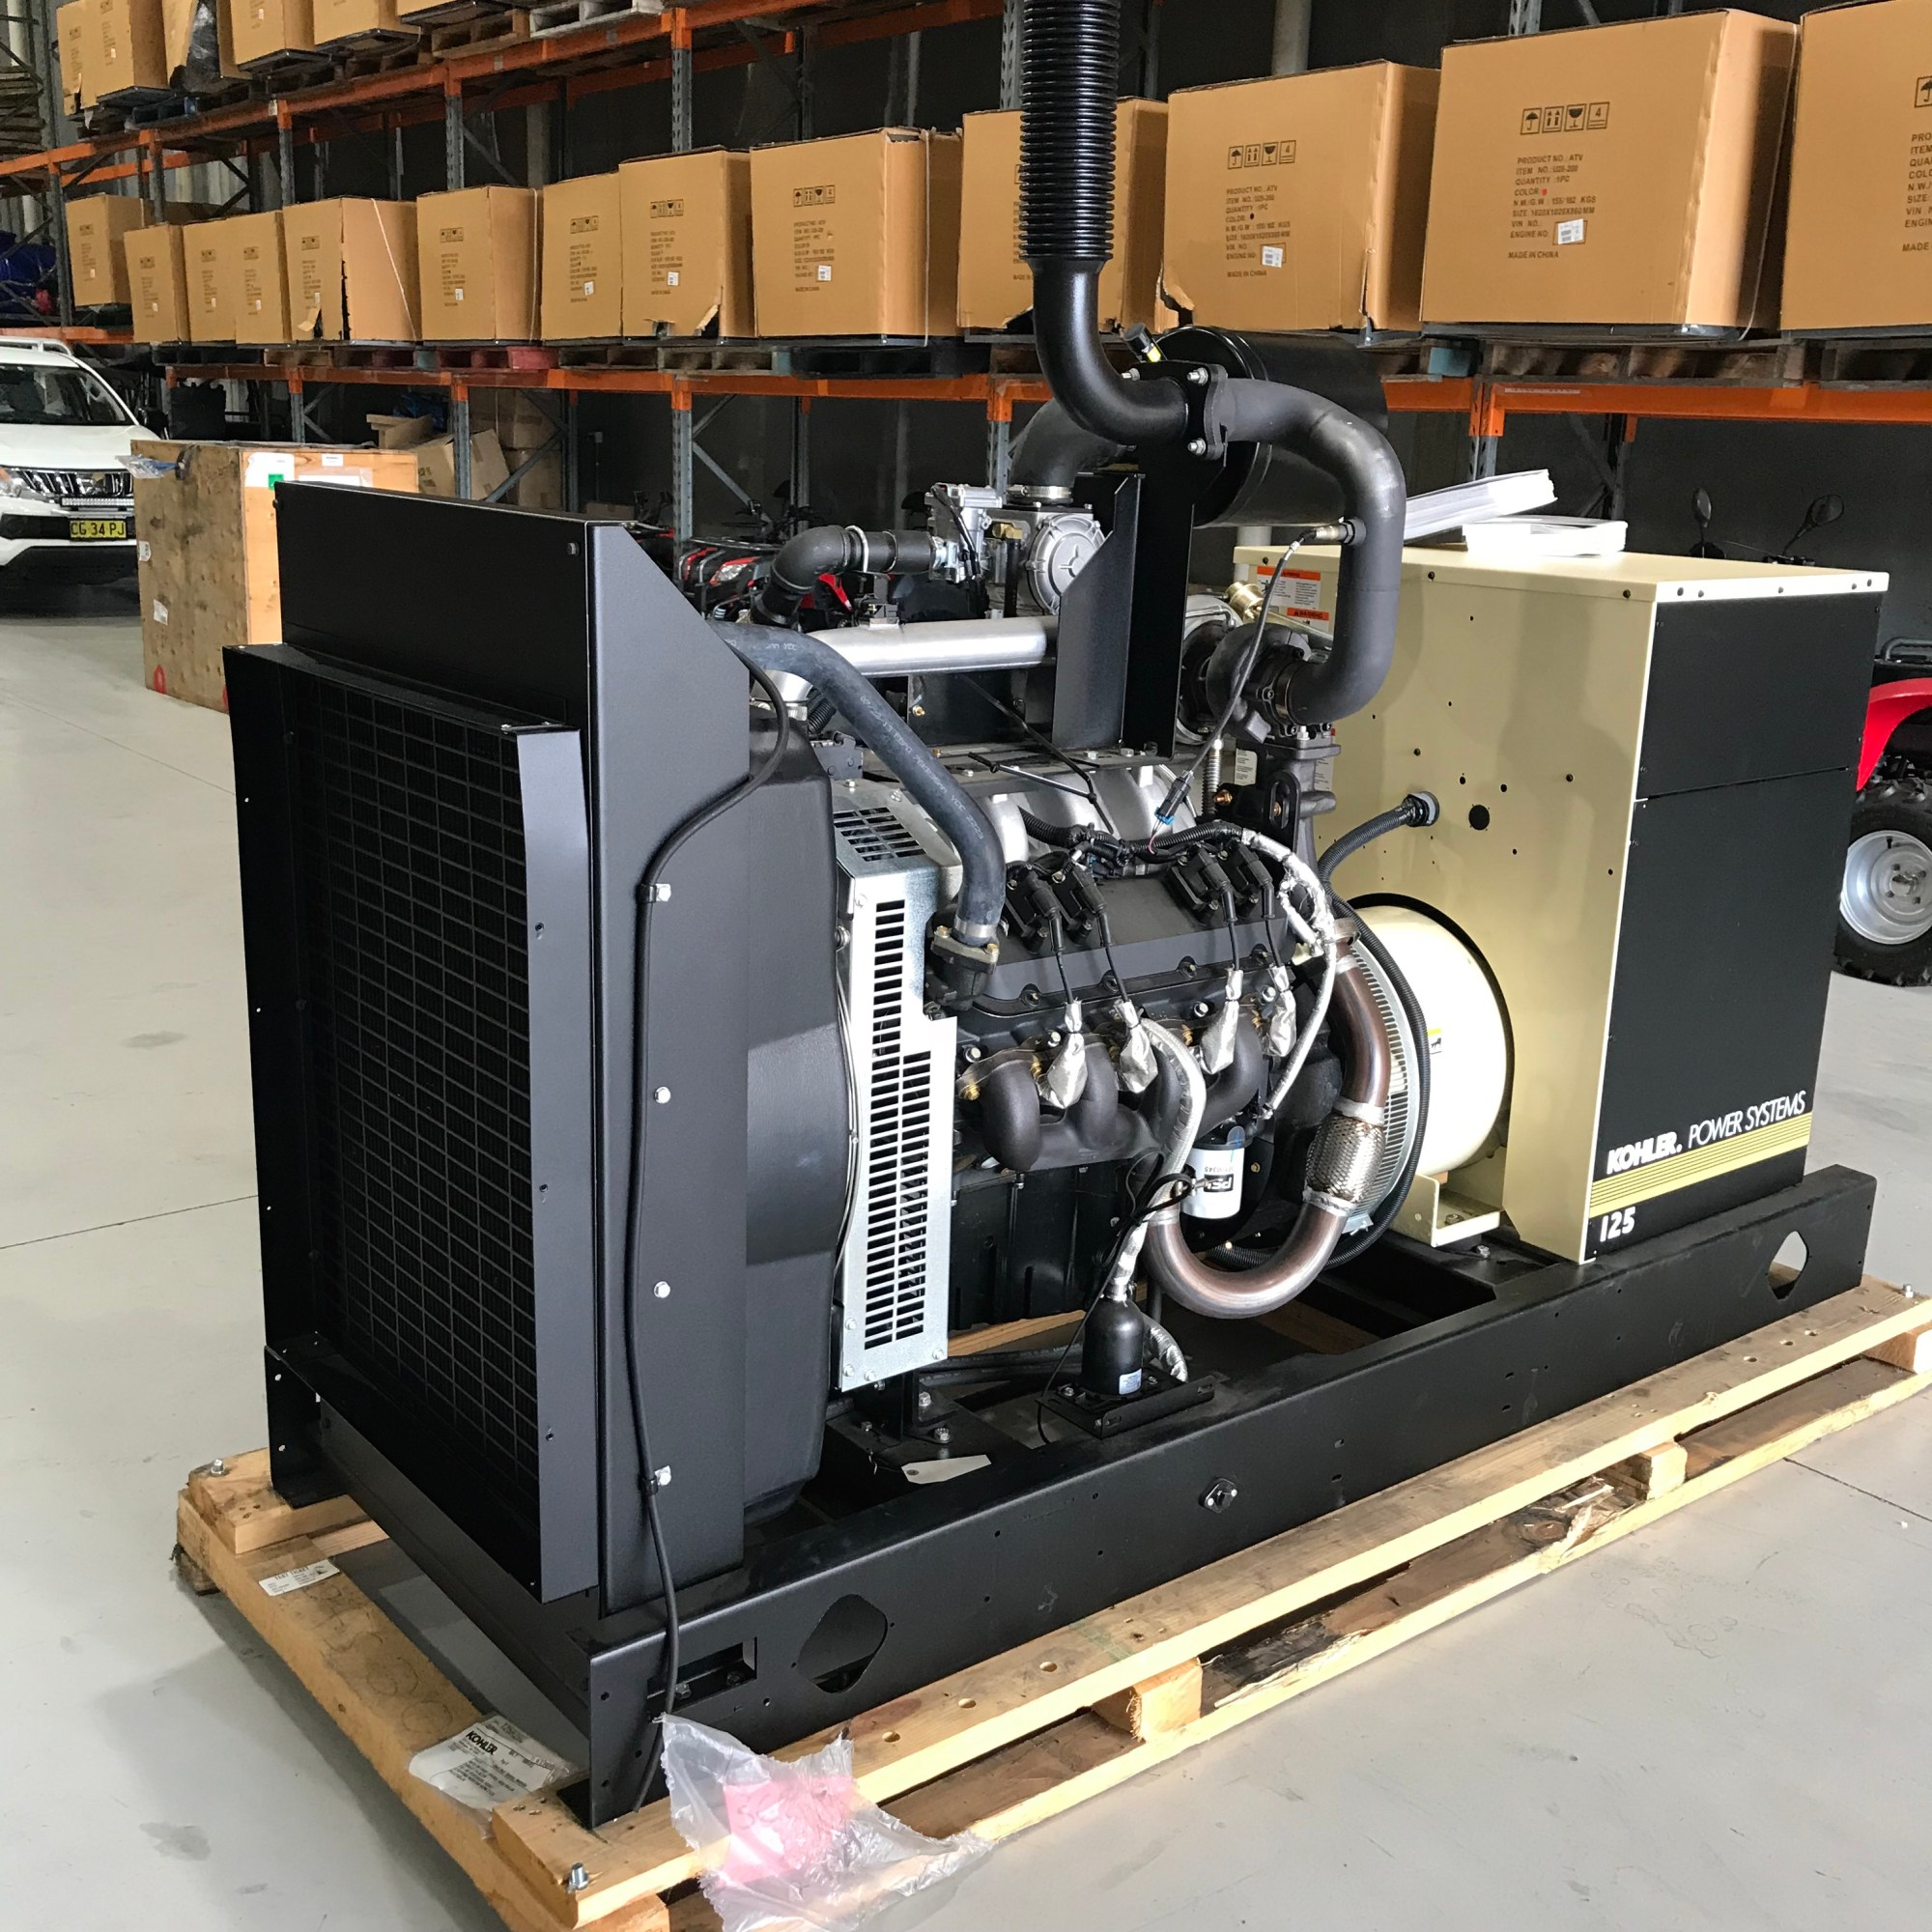 hight resolution of kohler array kohler 110kva 125rzgc gas generator u2013 lpg complied to australian rh genquip